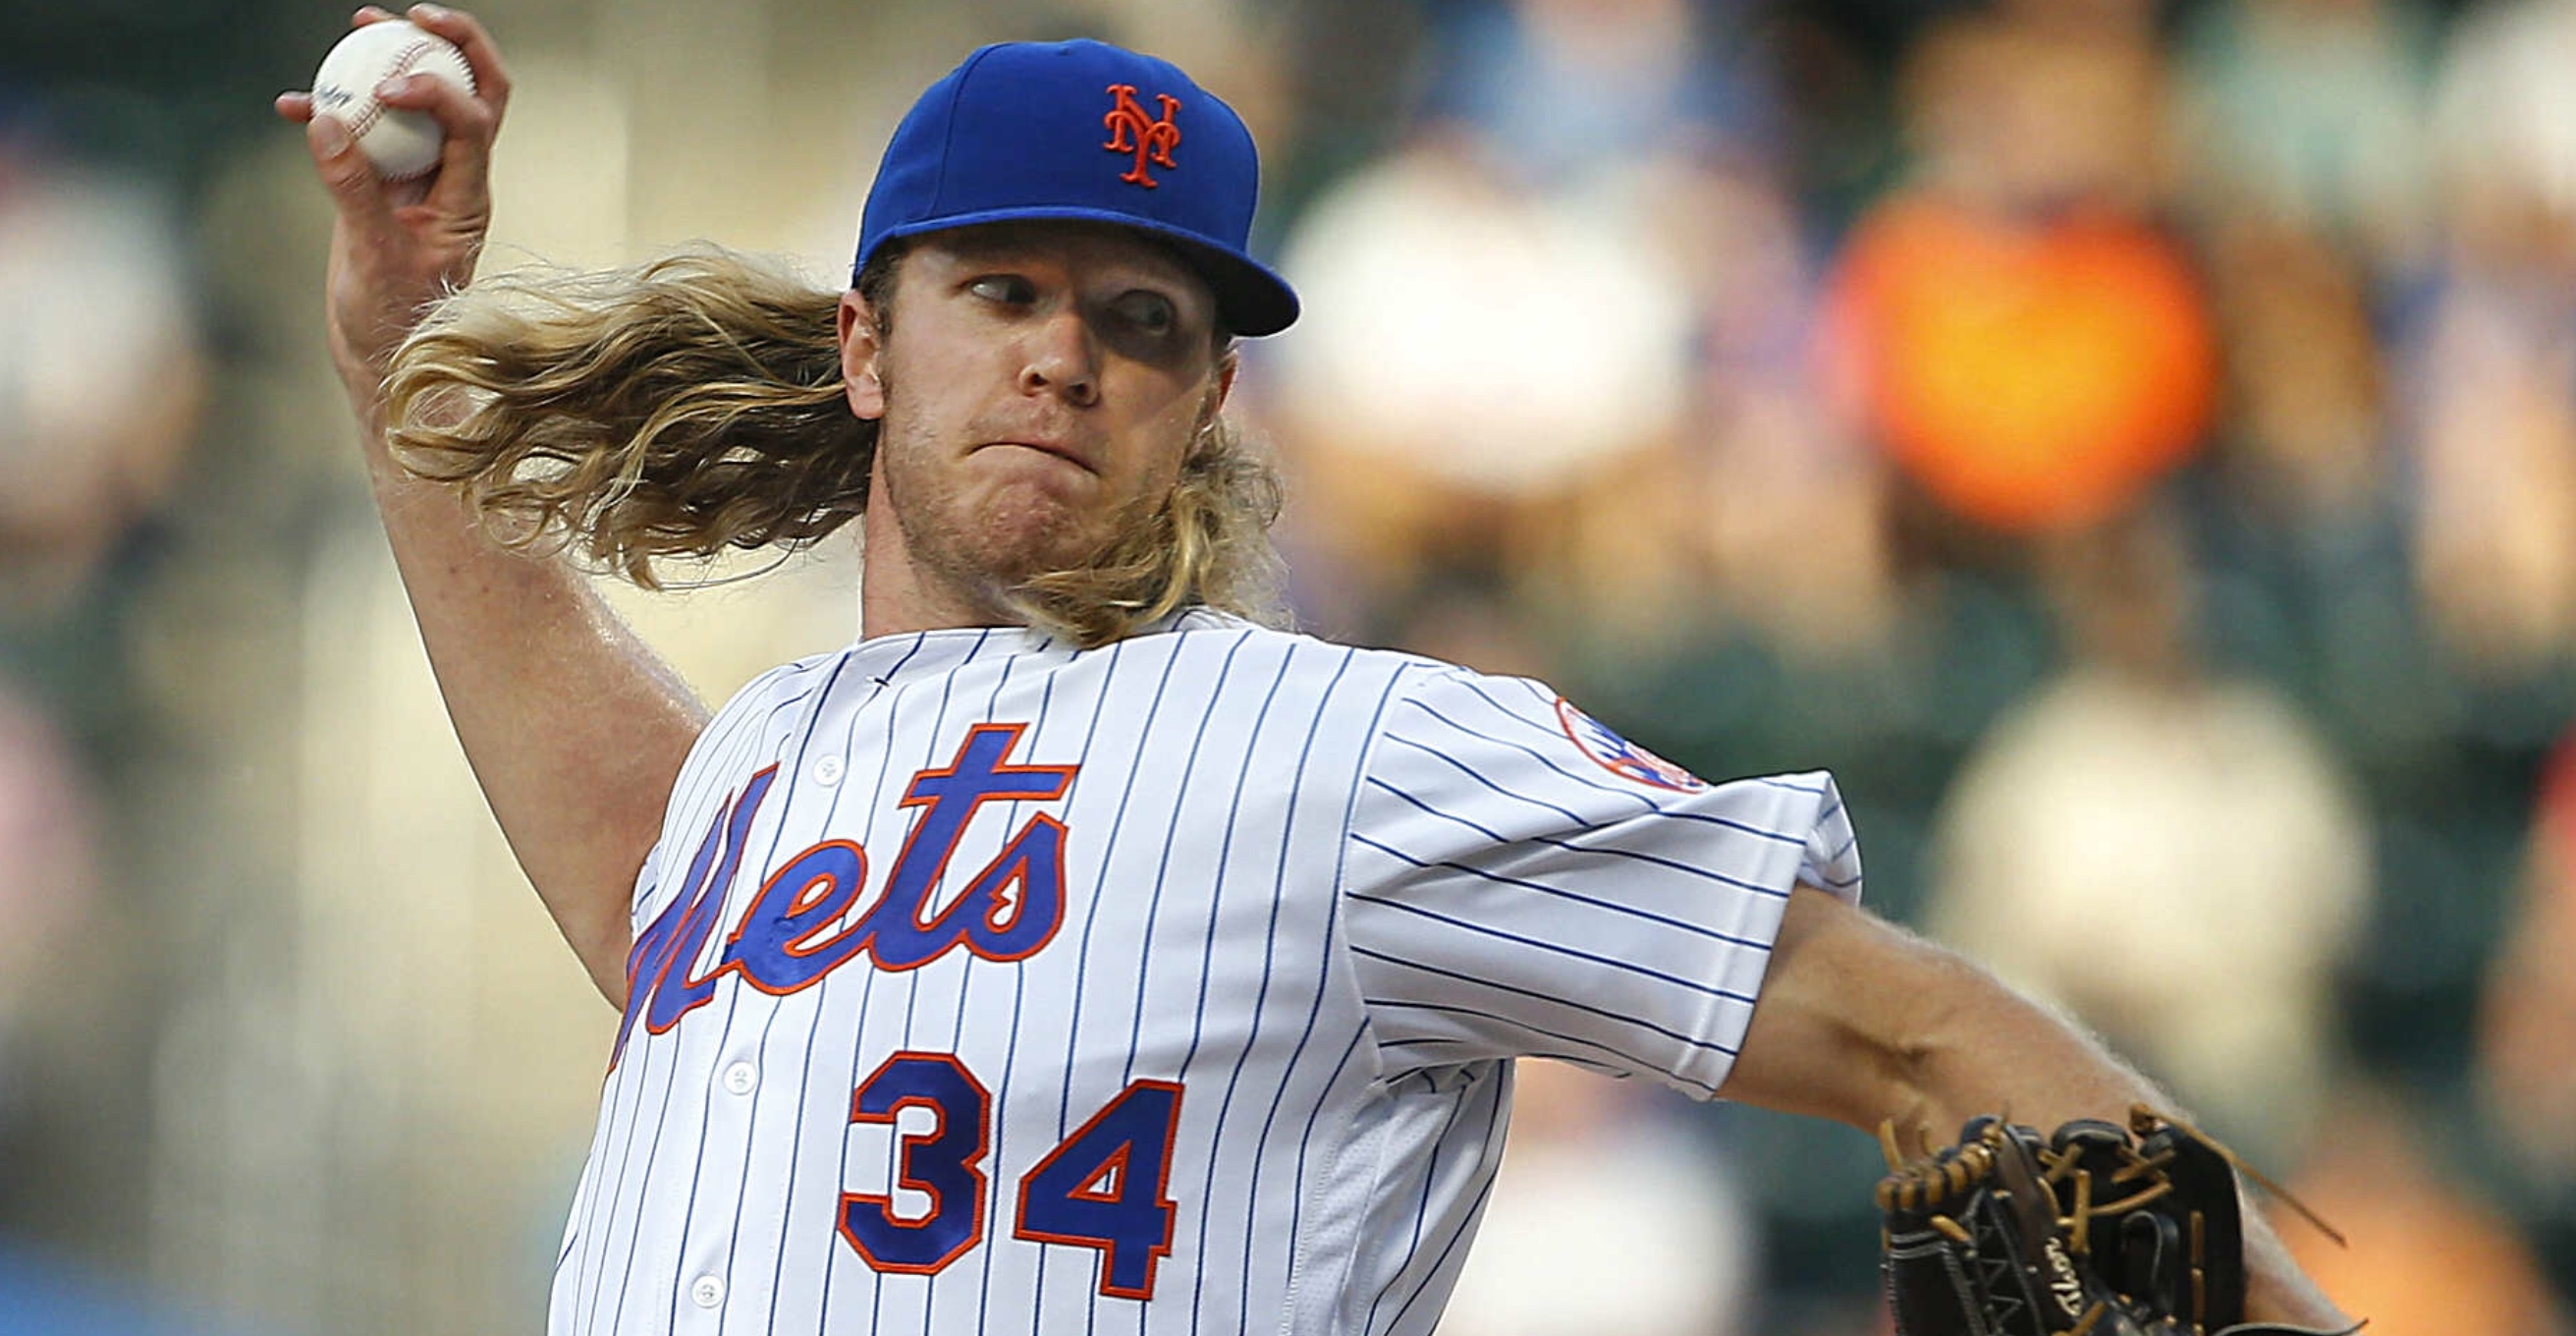 To meet the Mets in the Carrier Dome, I'll take the day off from work, Noah Syndergaard